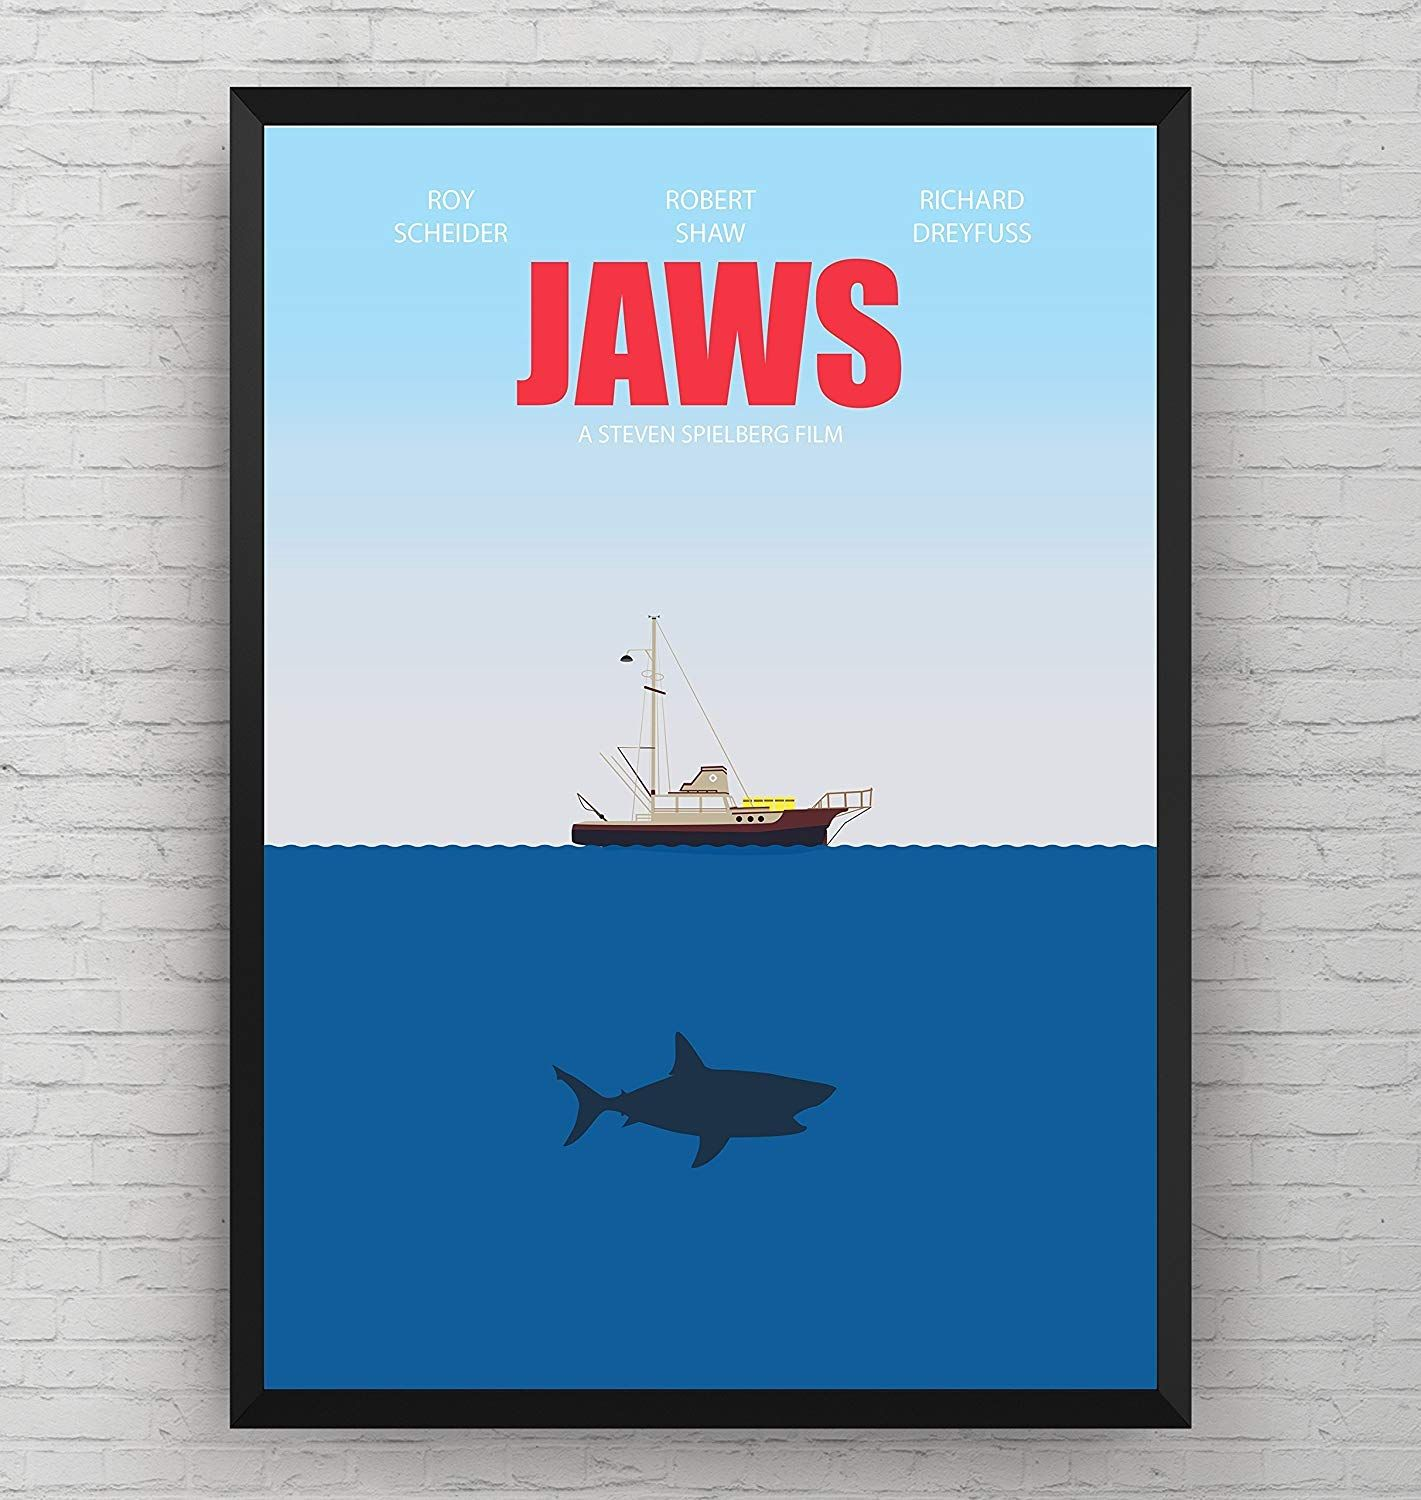 Buy It Now Jaws Poster Movie Wall Art Print Decor Film Room Gift Frame Not Included Handmade Movie Wall Art Wall Art Prints Movie Art